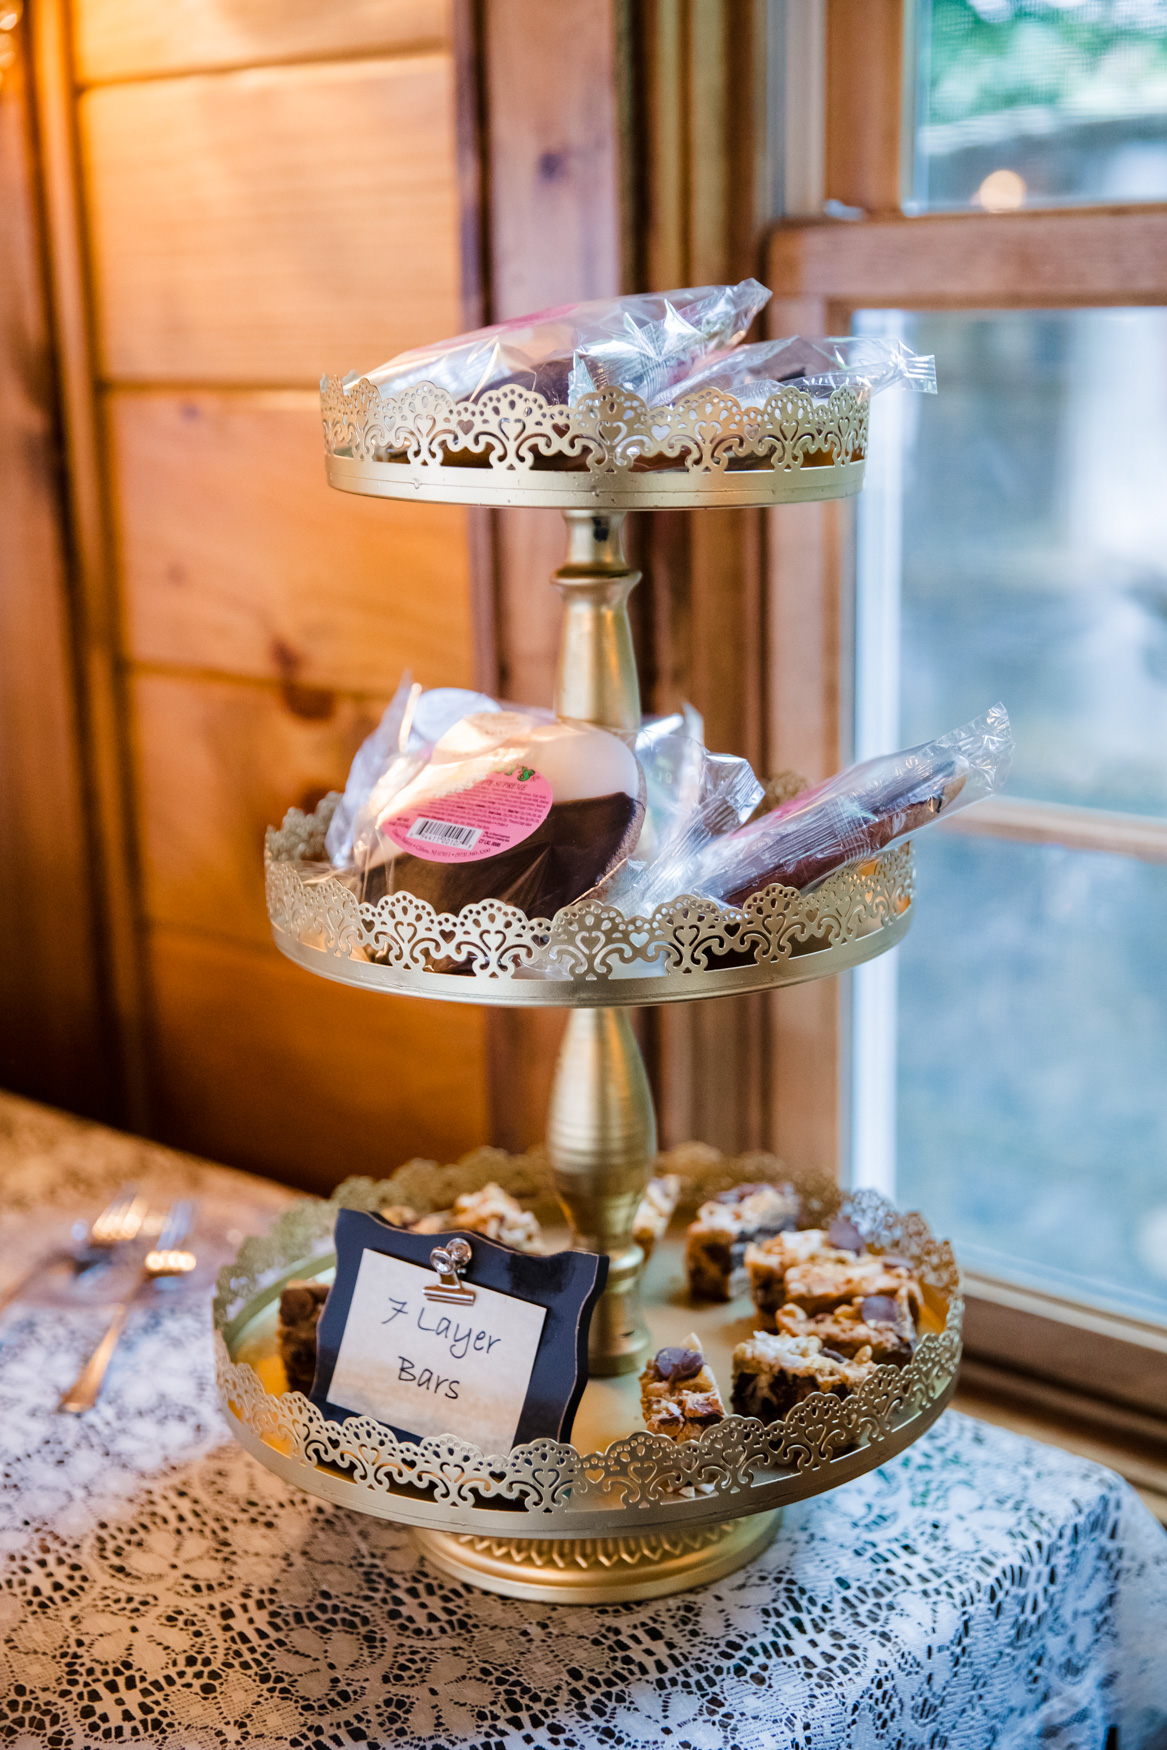 Sweet Treats and 7 Layer Bars Waynesville NC Wedding Photography Inn at Tranquility Farm